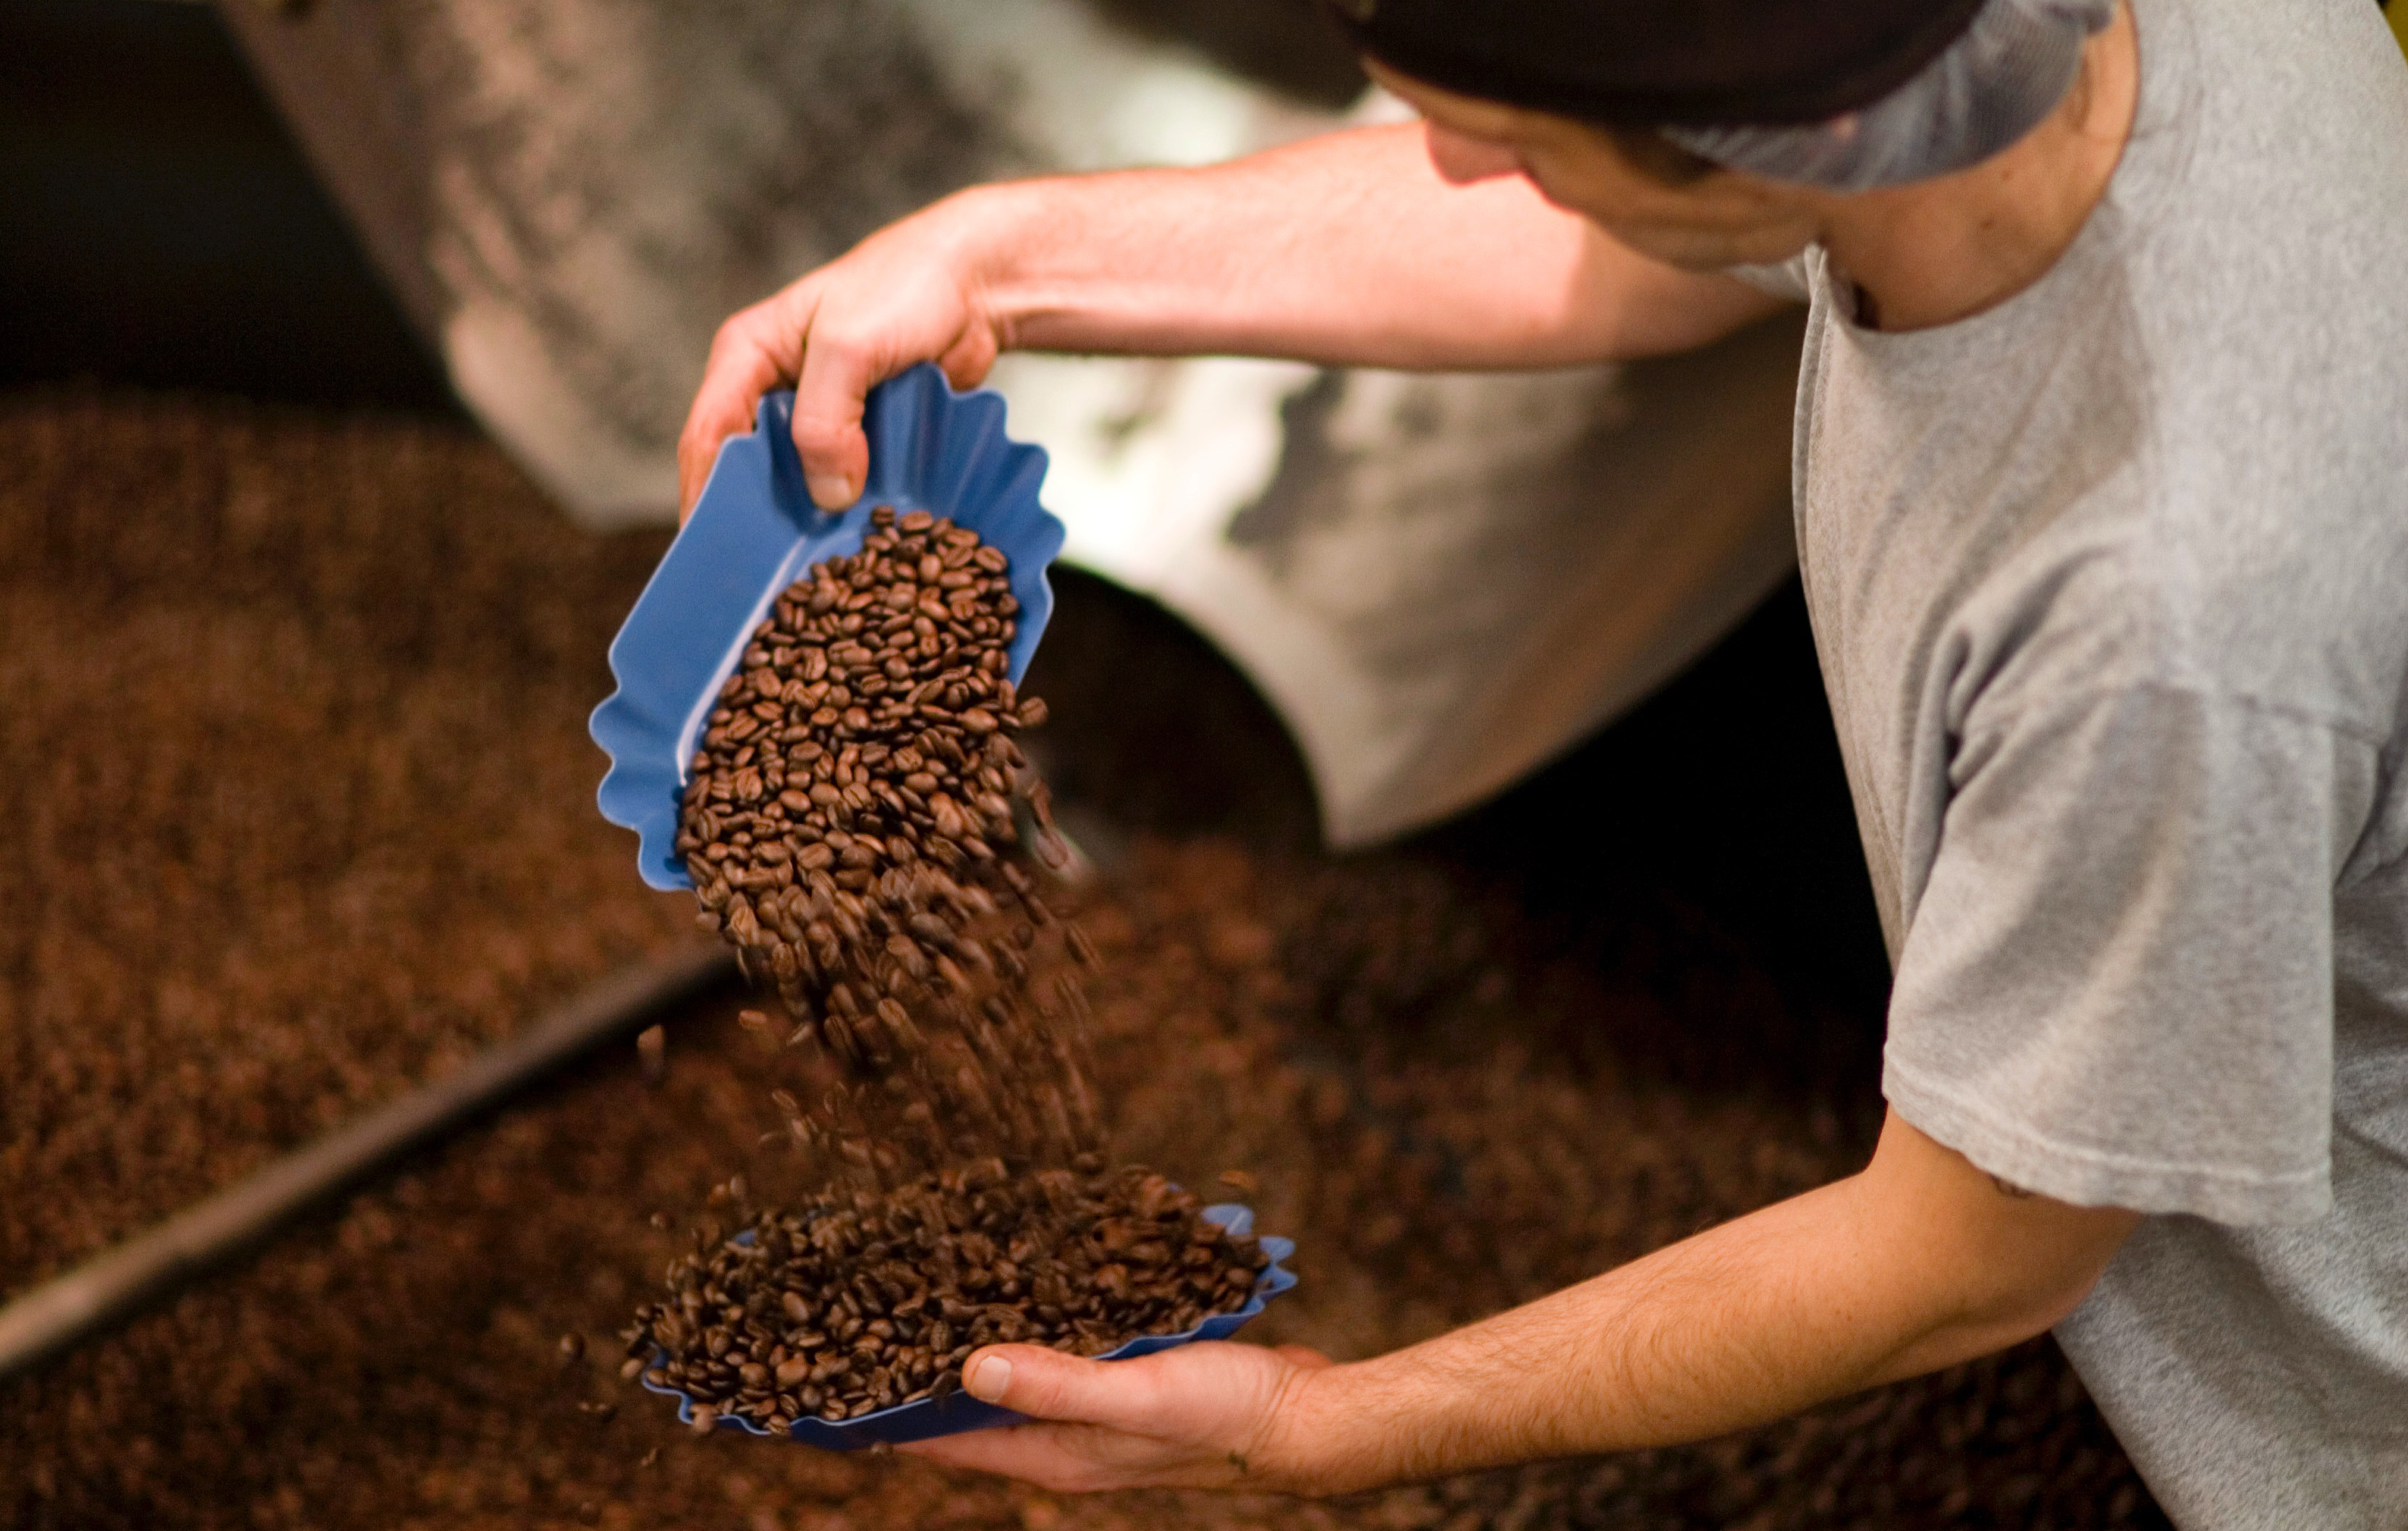 Peet's Coffee is investing $58 million to build an East Coast manufacturing operation to better compete in this region of the country.